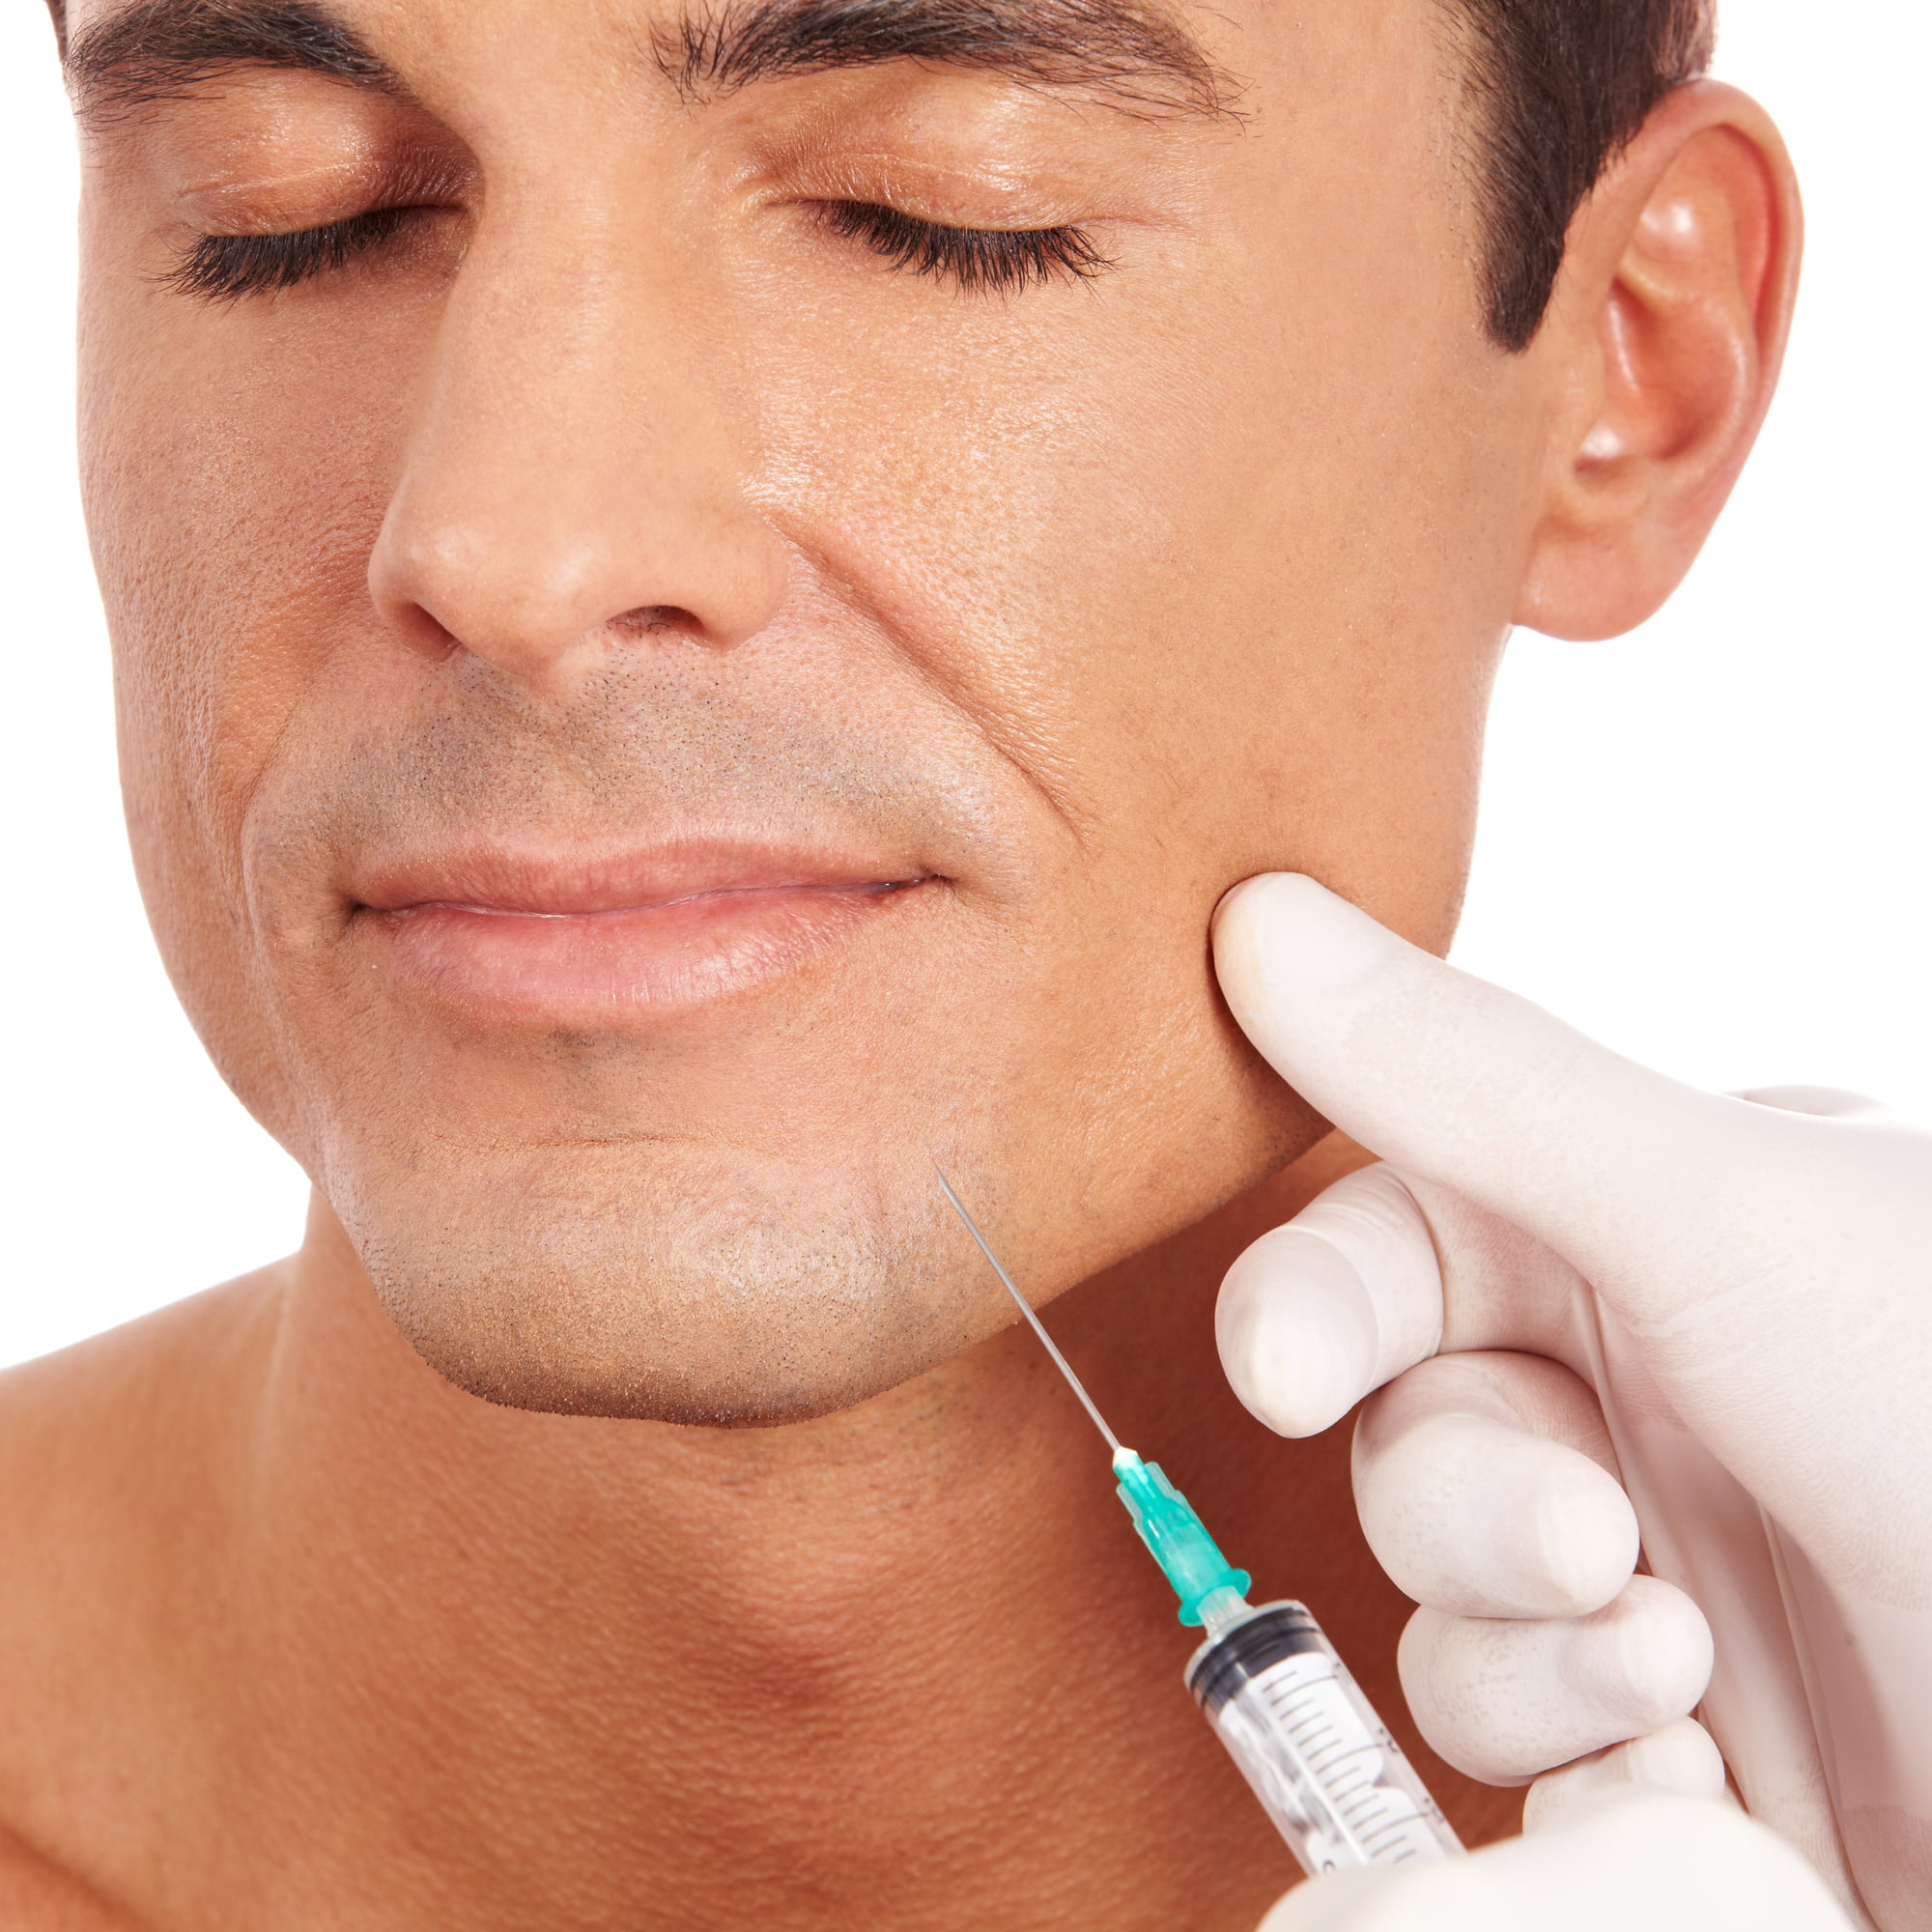 How Botox is Used for Jawline Contouring